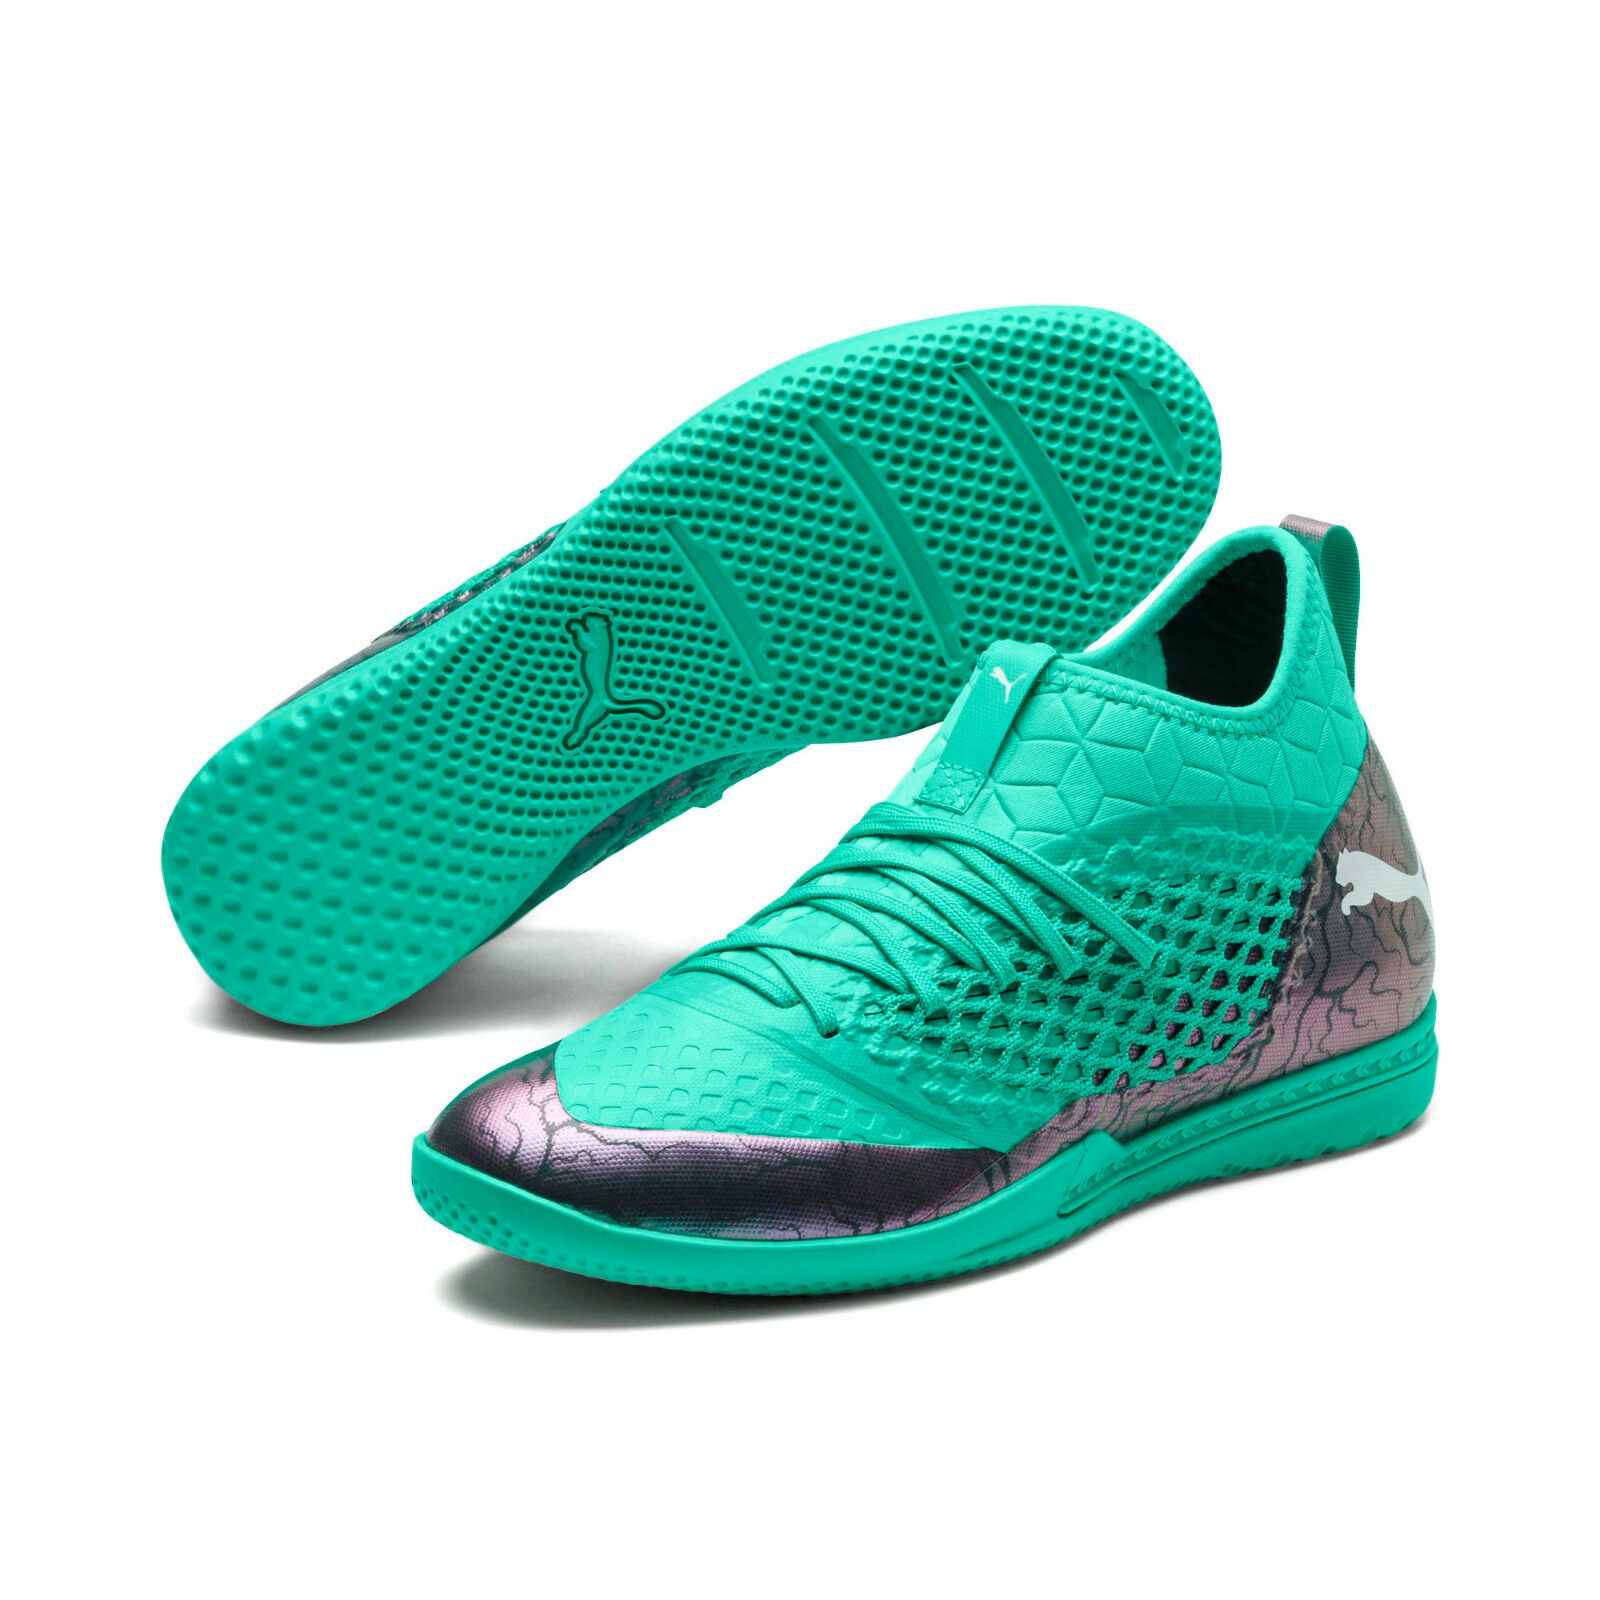 Puma Future Netfit 2.3 IT 2018 Indoor    Training Soccer shoes Teal   Silver